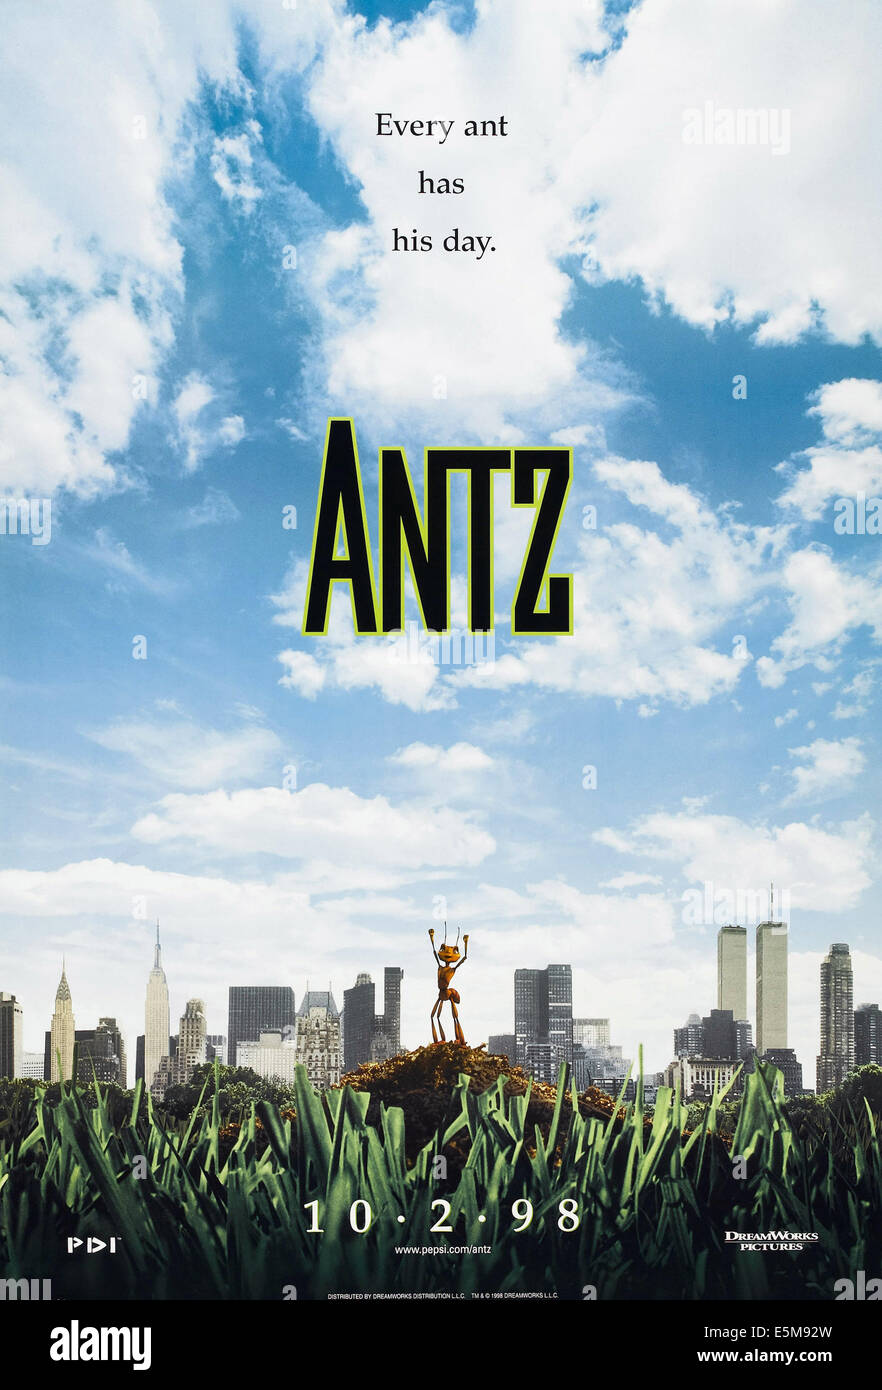 ANTZ, US advance poster art, 1998. ©Dreamworks/courtesy Everett Collection - Stock Image